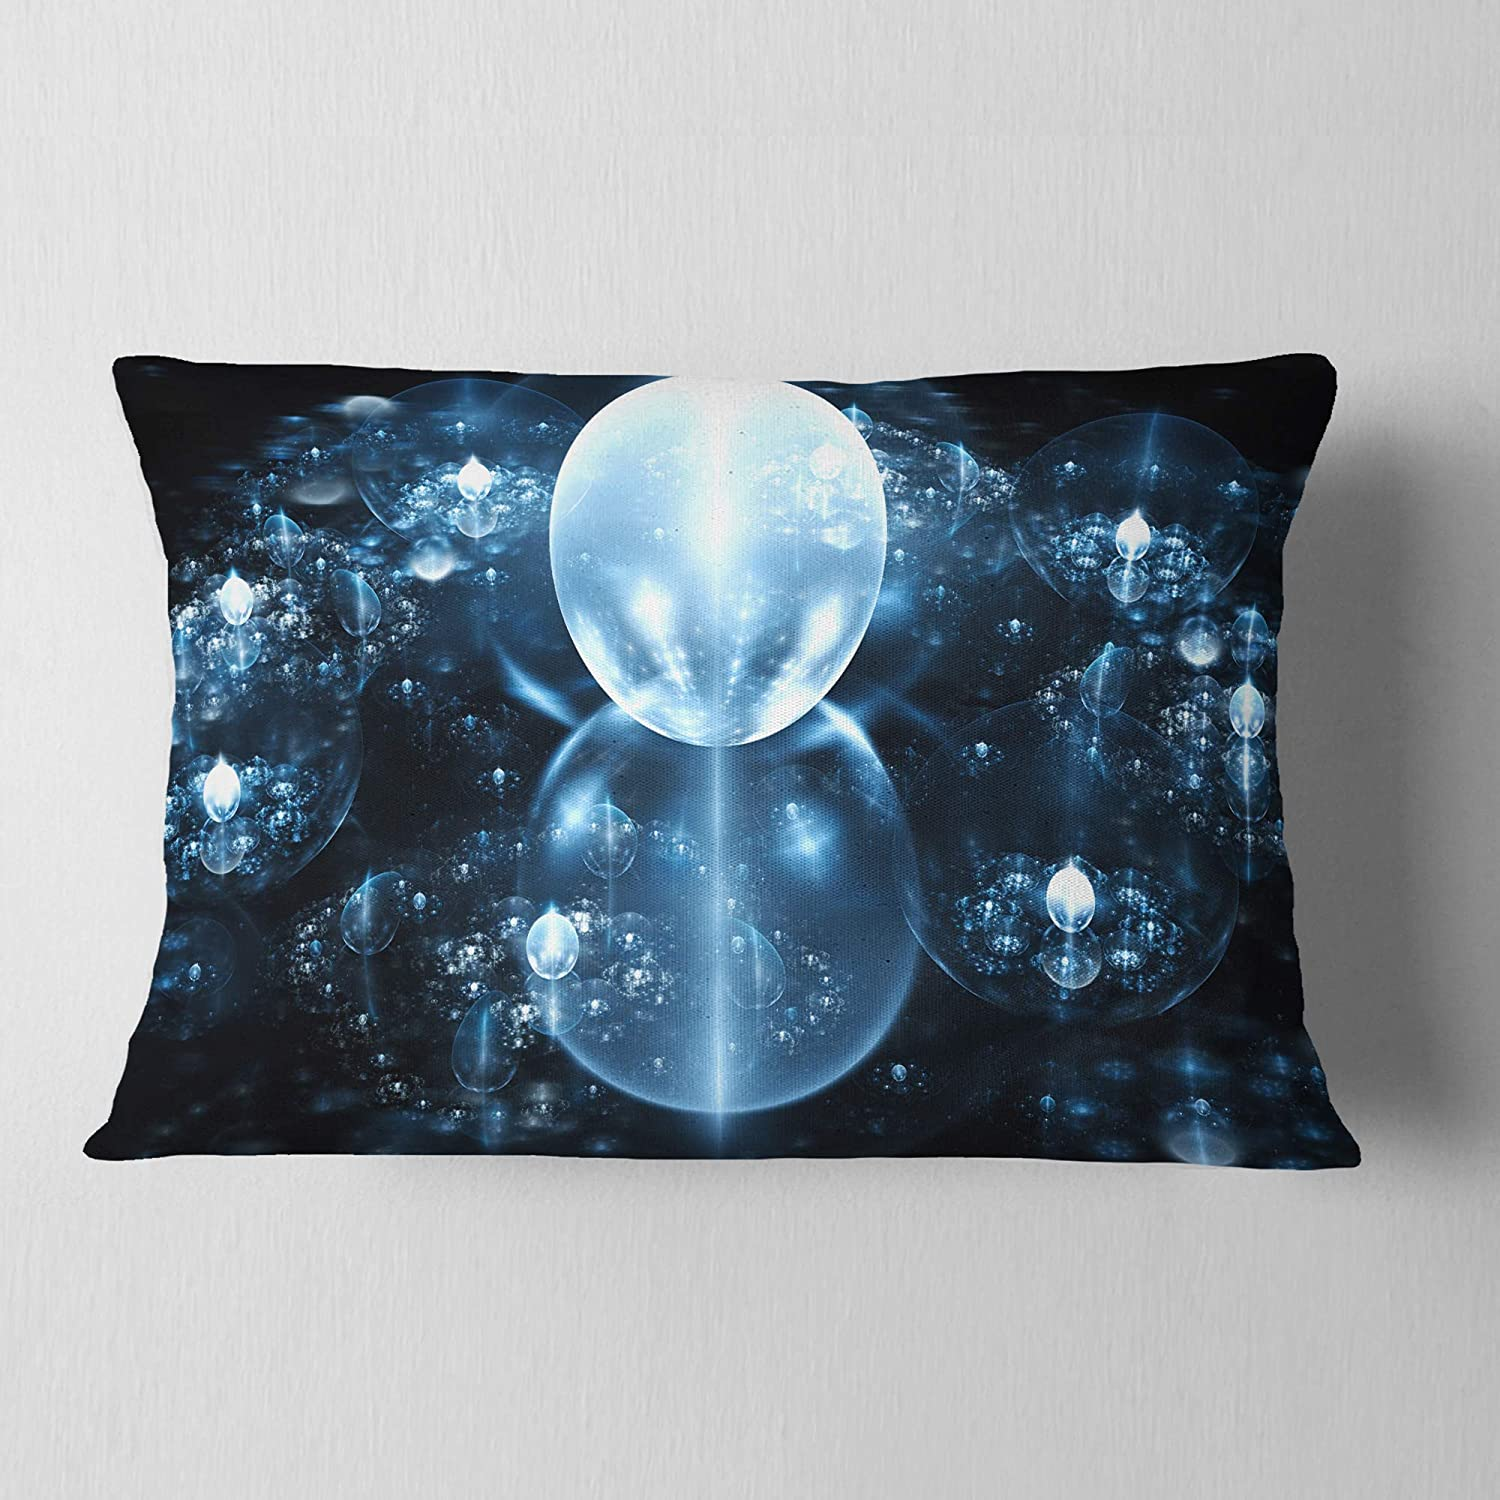 Sofa Throw Pillow 12 in x 20 in Insert Printed On Both Side Designart CU16117-12-20 Blue Water Drops on Mirror Abstract Lumbar Cushion Cover for Living Room in